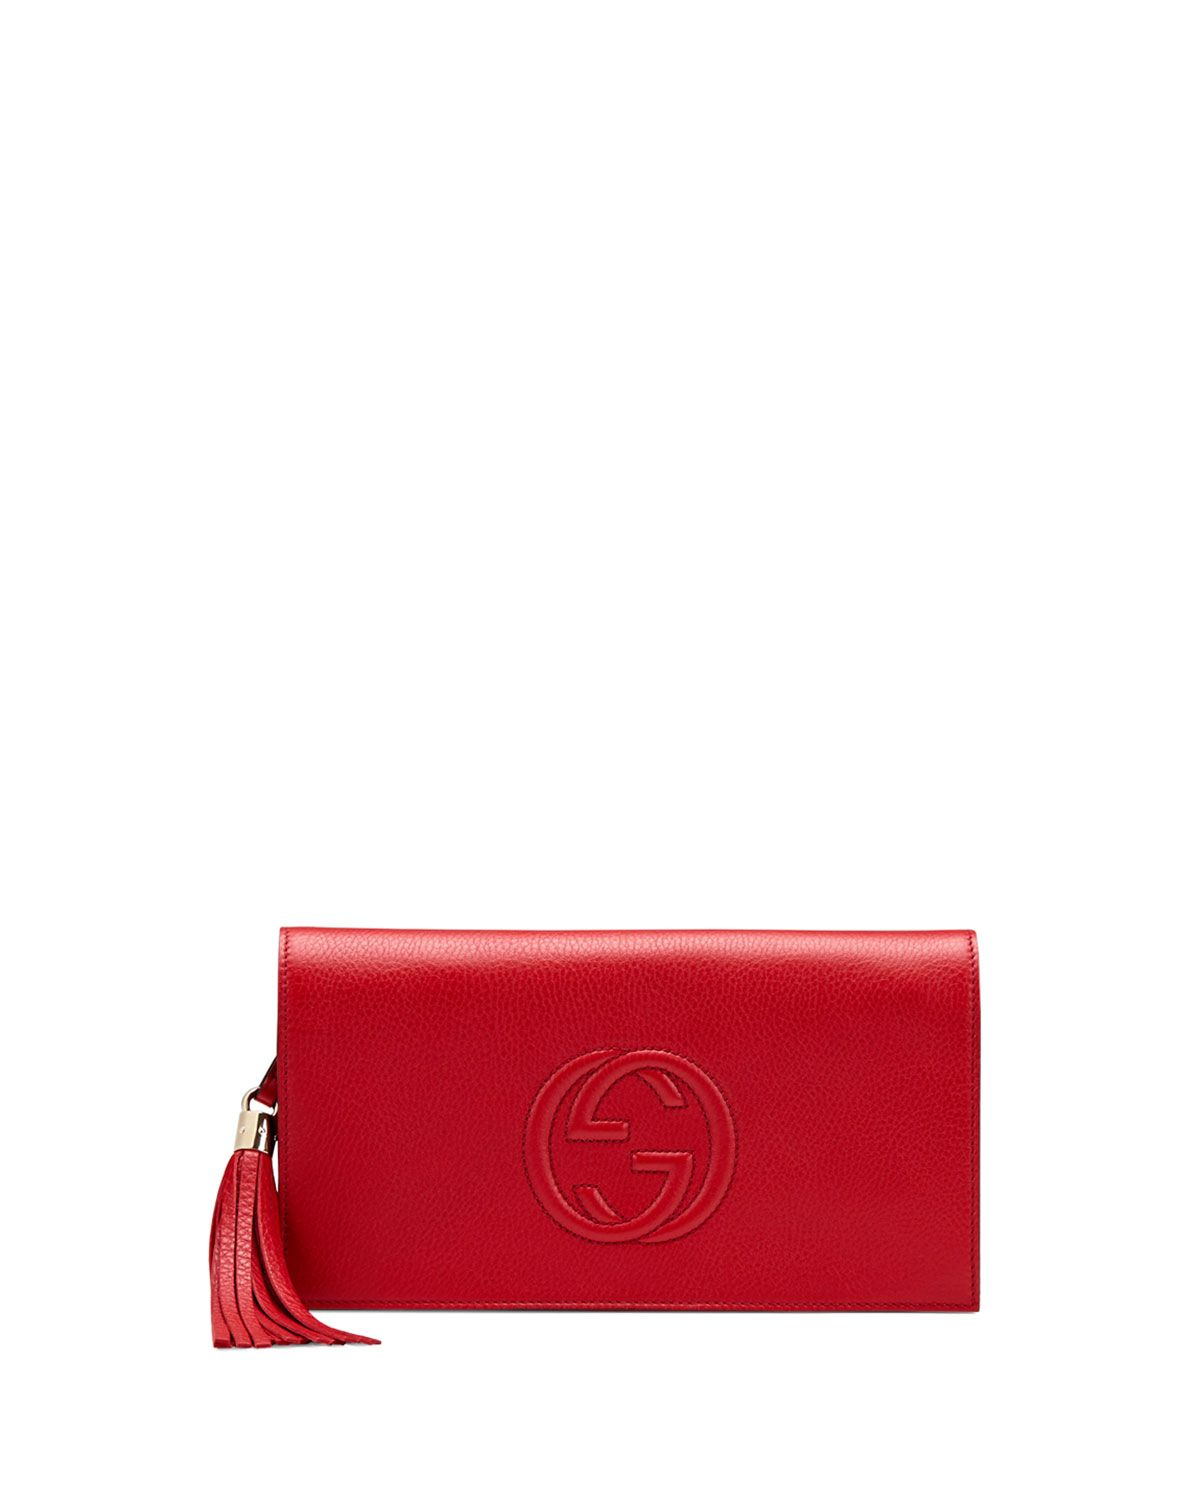 a2c02fbdbc3 Soho Flap Clutch Red | *Handbags, Wallets & Cases > Handbags ...